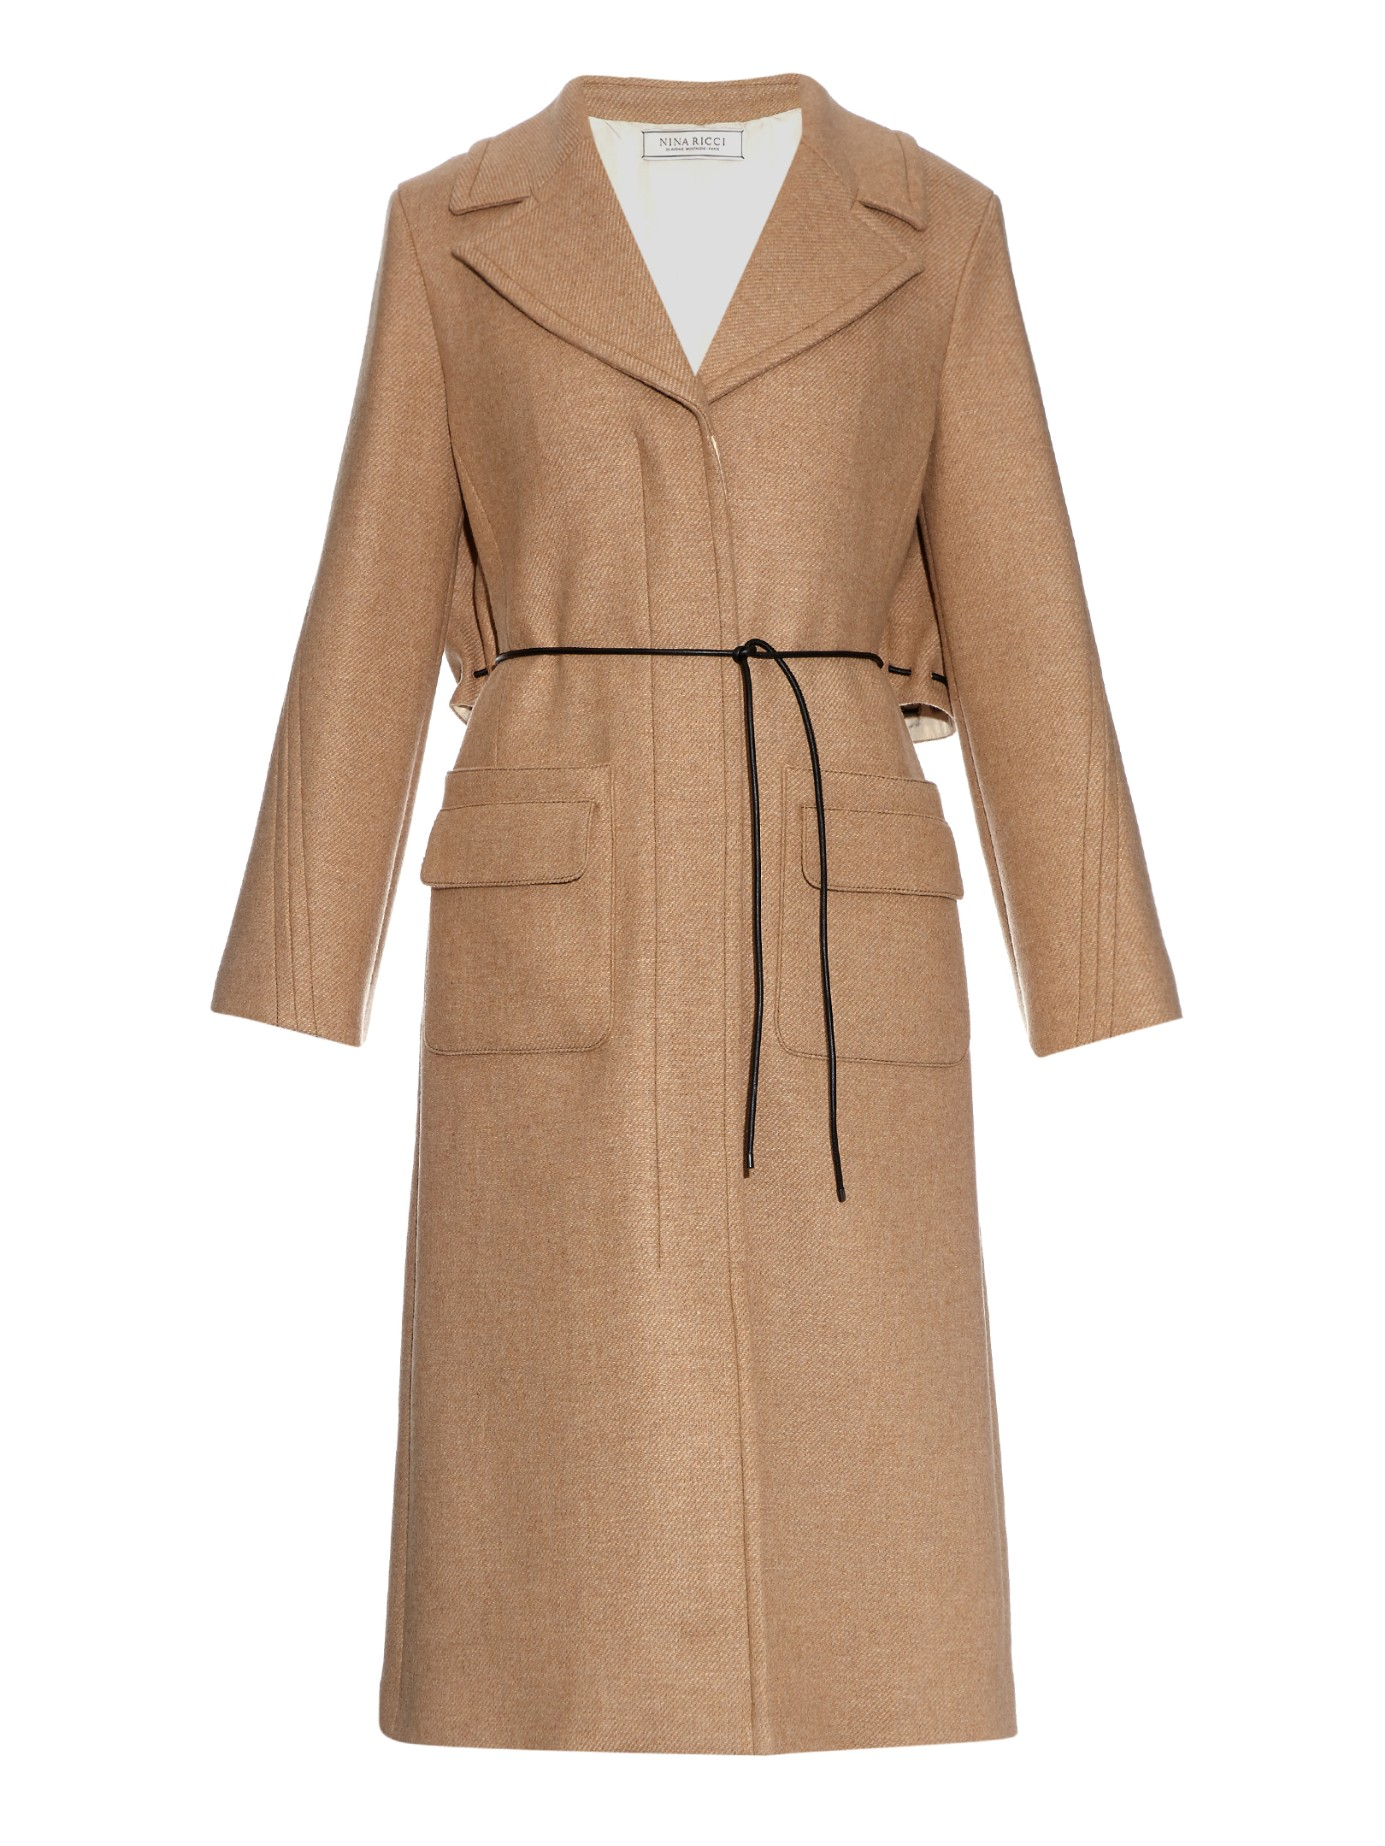 Nina ricci Wool And Cashmere-blend Coat in Natural | Lyst